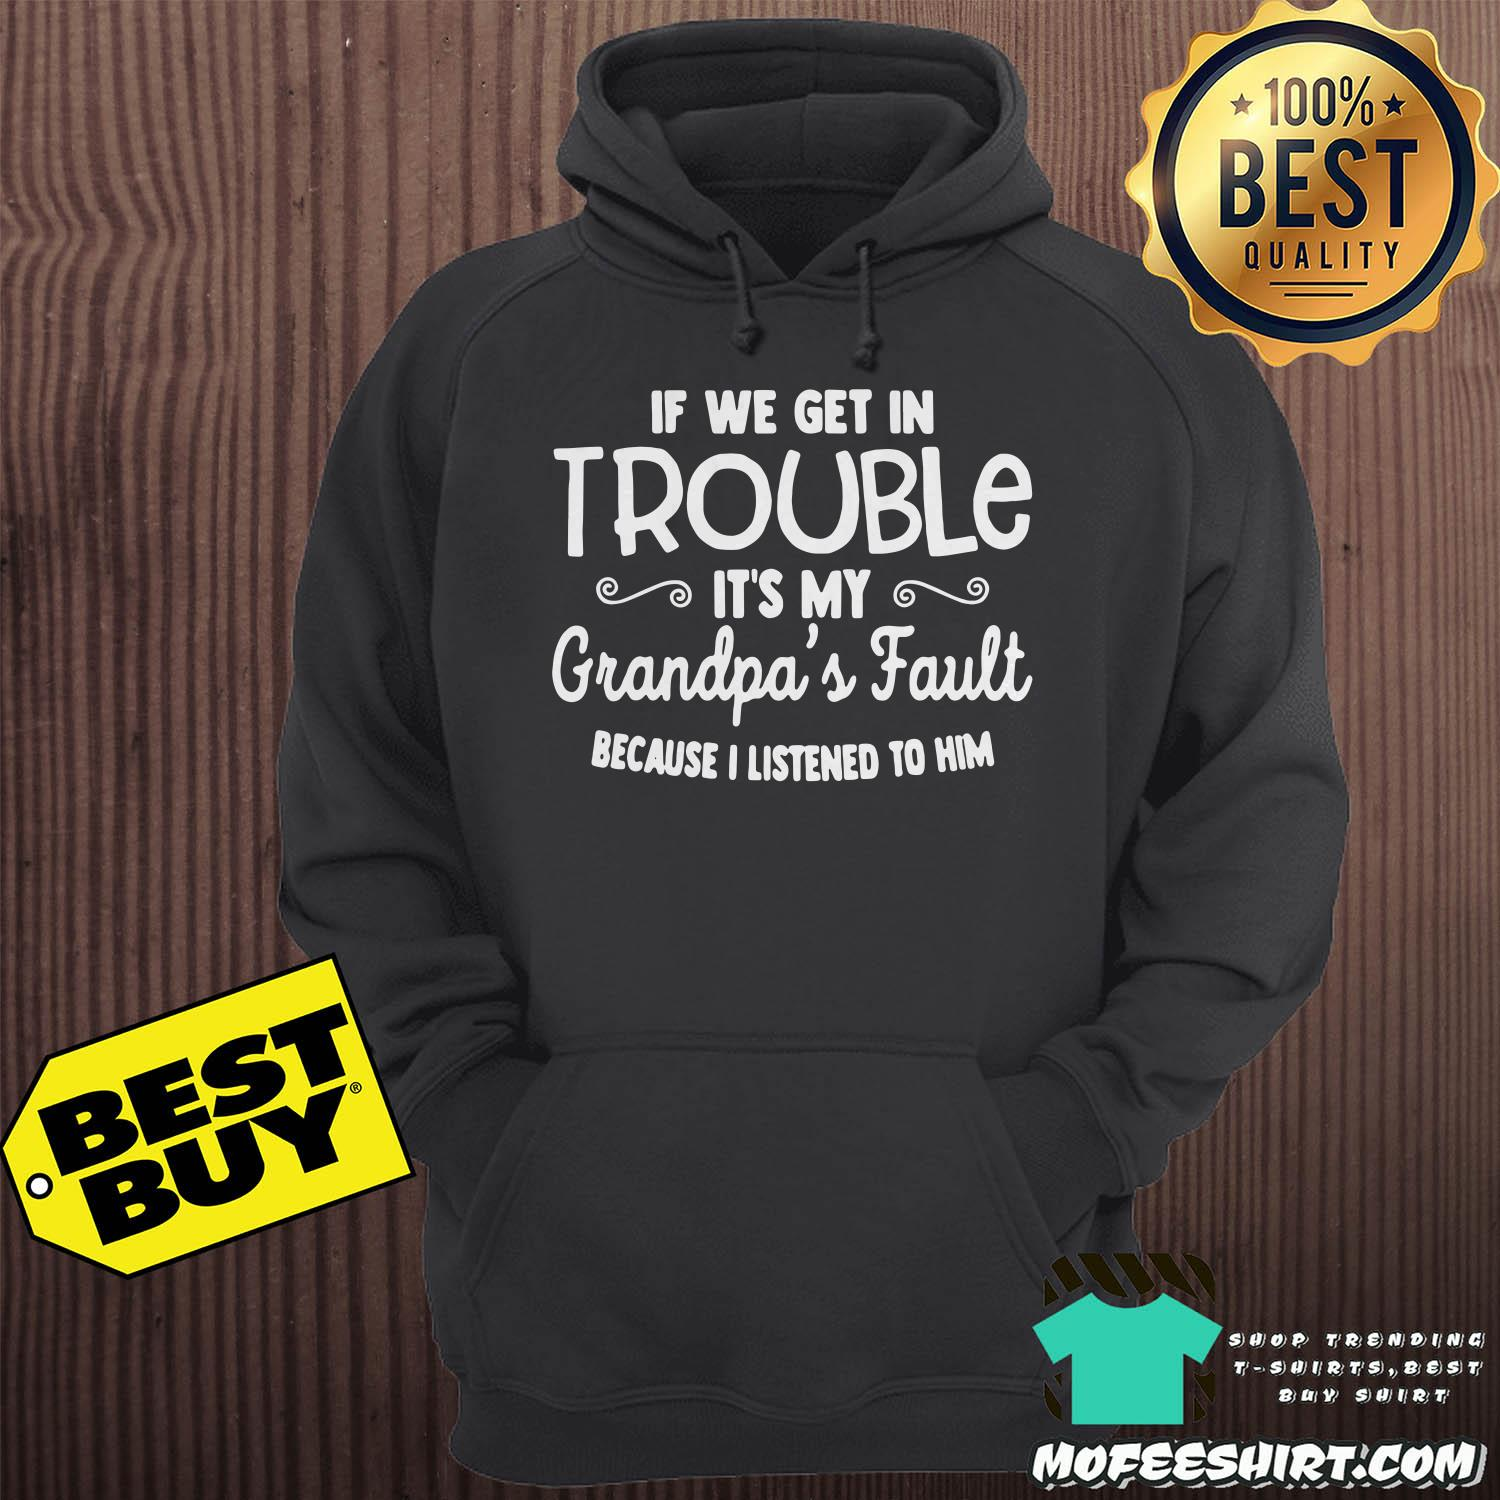 if we get in trouble its my grandpas fault because i listened to him hoodie - If We Get In Trouble It's My Grandpa's Fault Because I Listened To Him Shirt